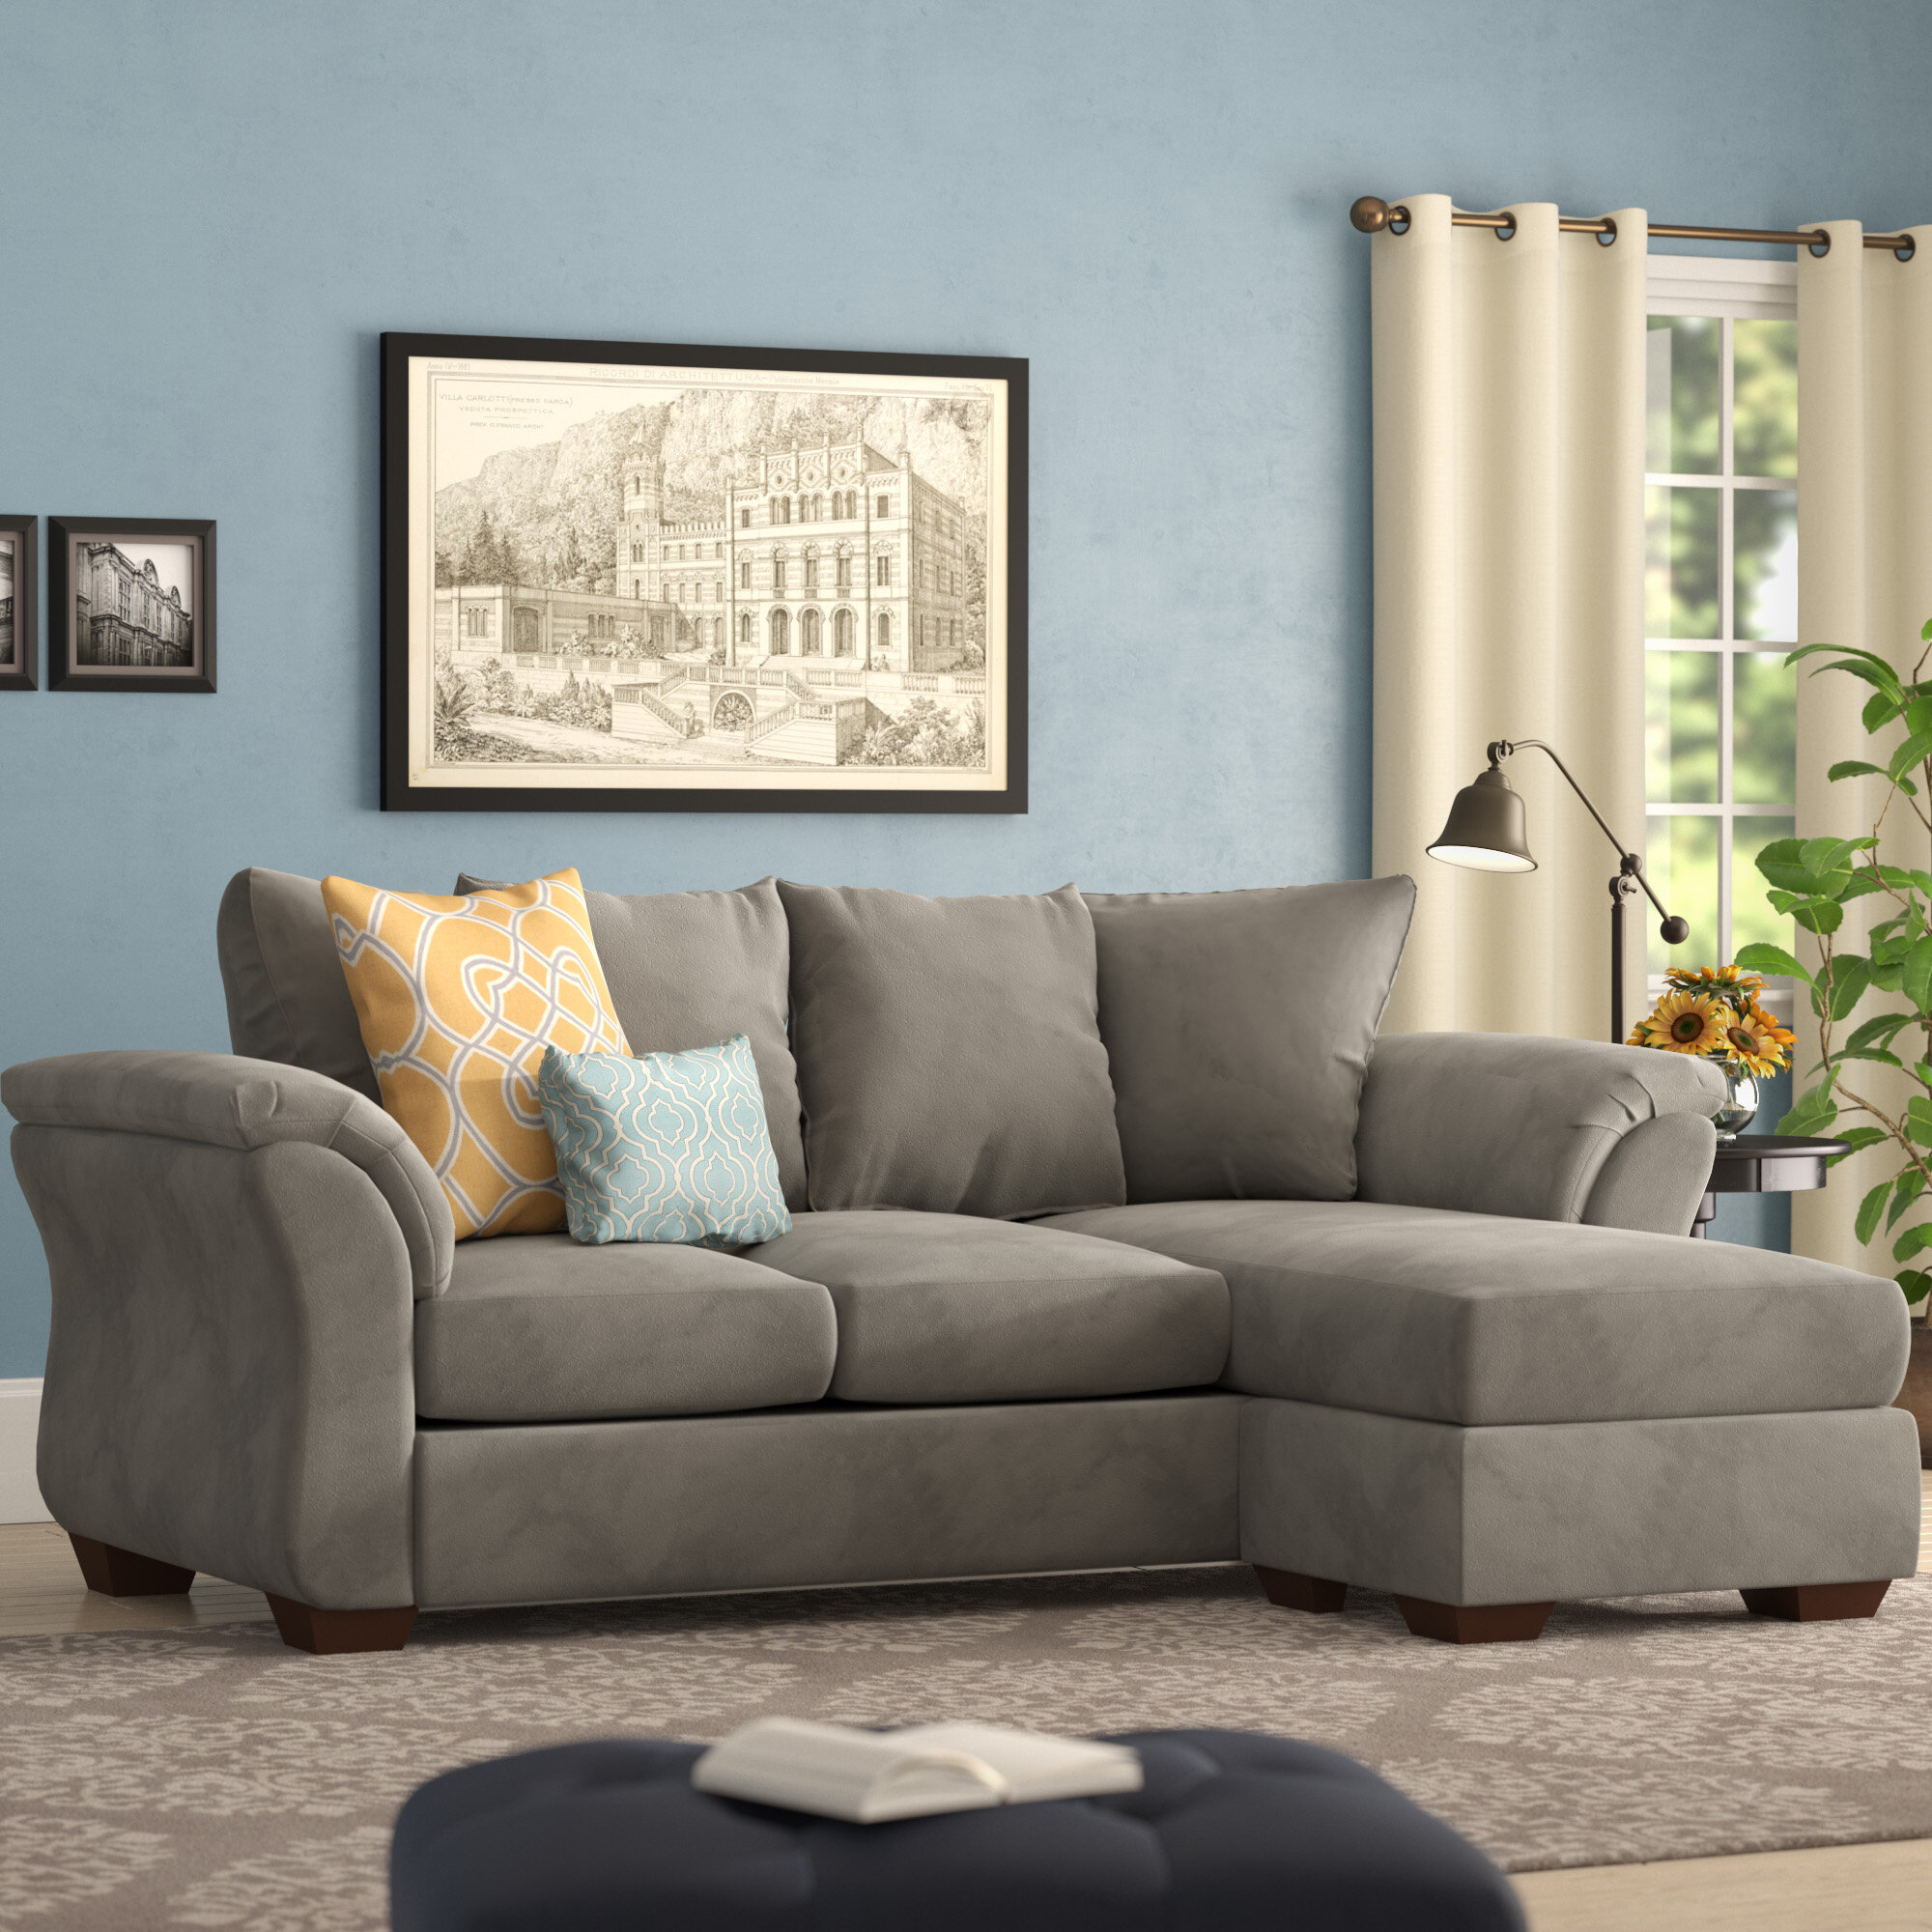 large f a stack loveseat bed chair depot petite inc mccloud e collection sofas s o l r p the